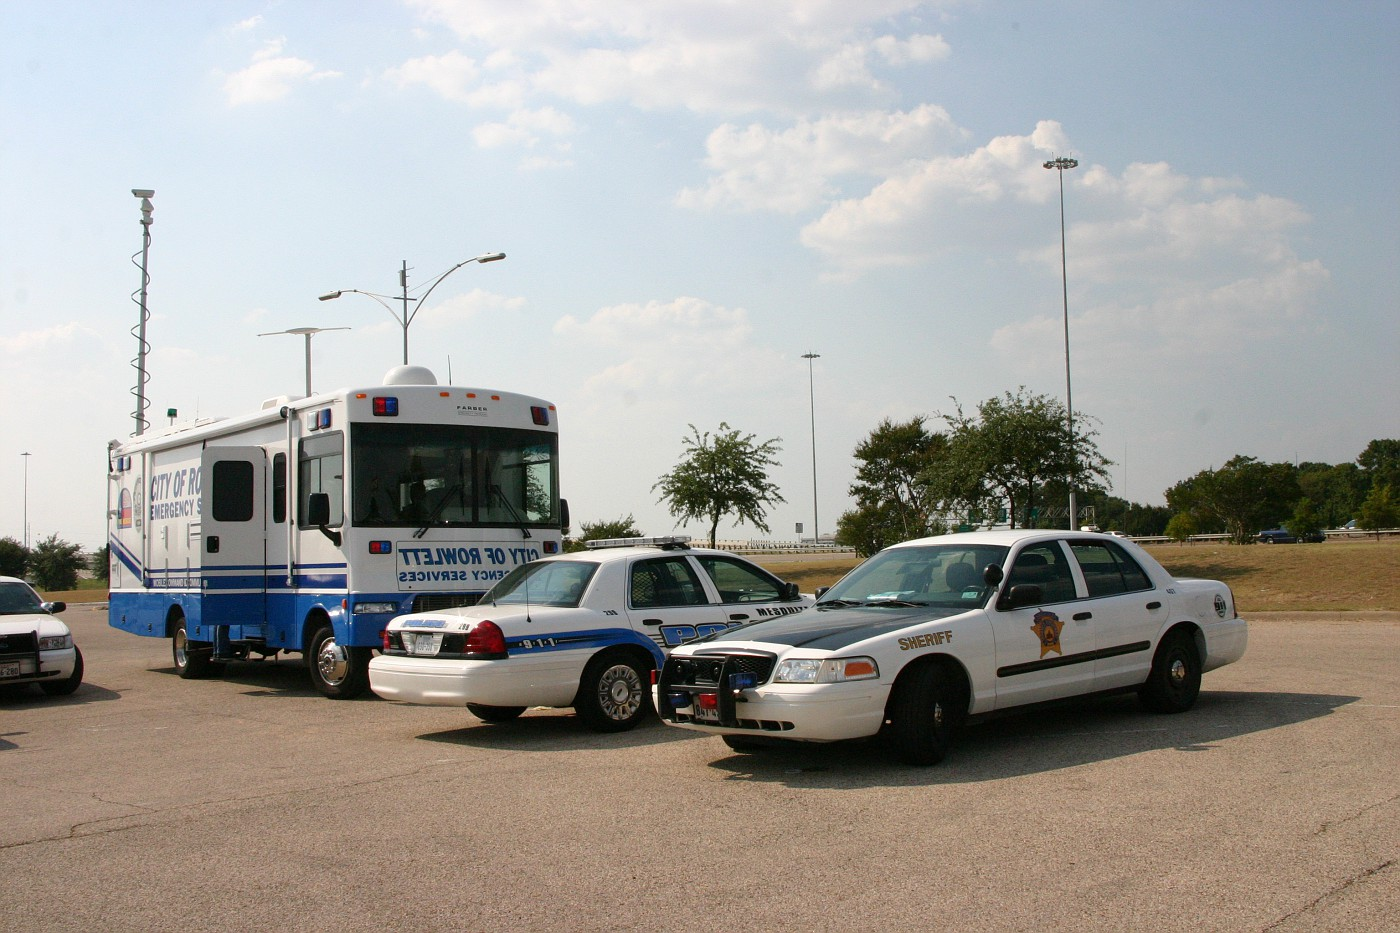 Dallas County Sheriff / MPD/Rowlett PD